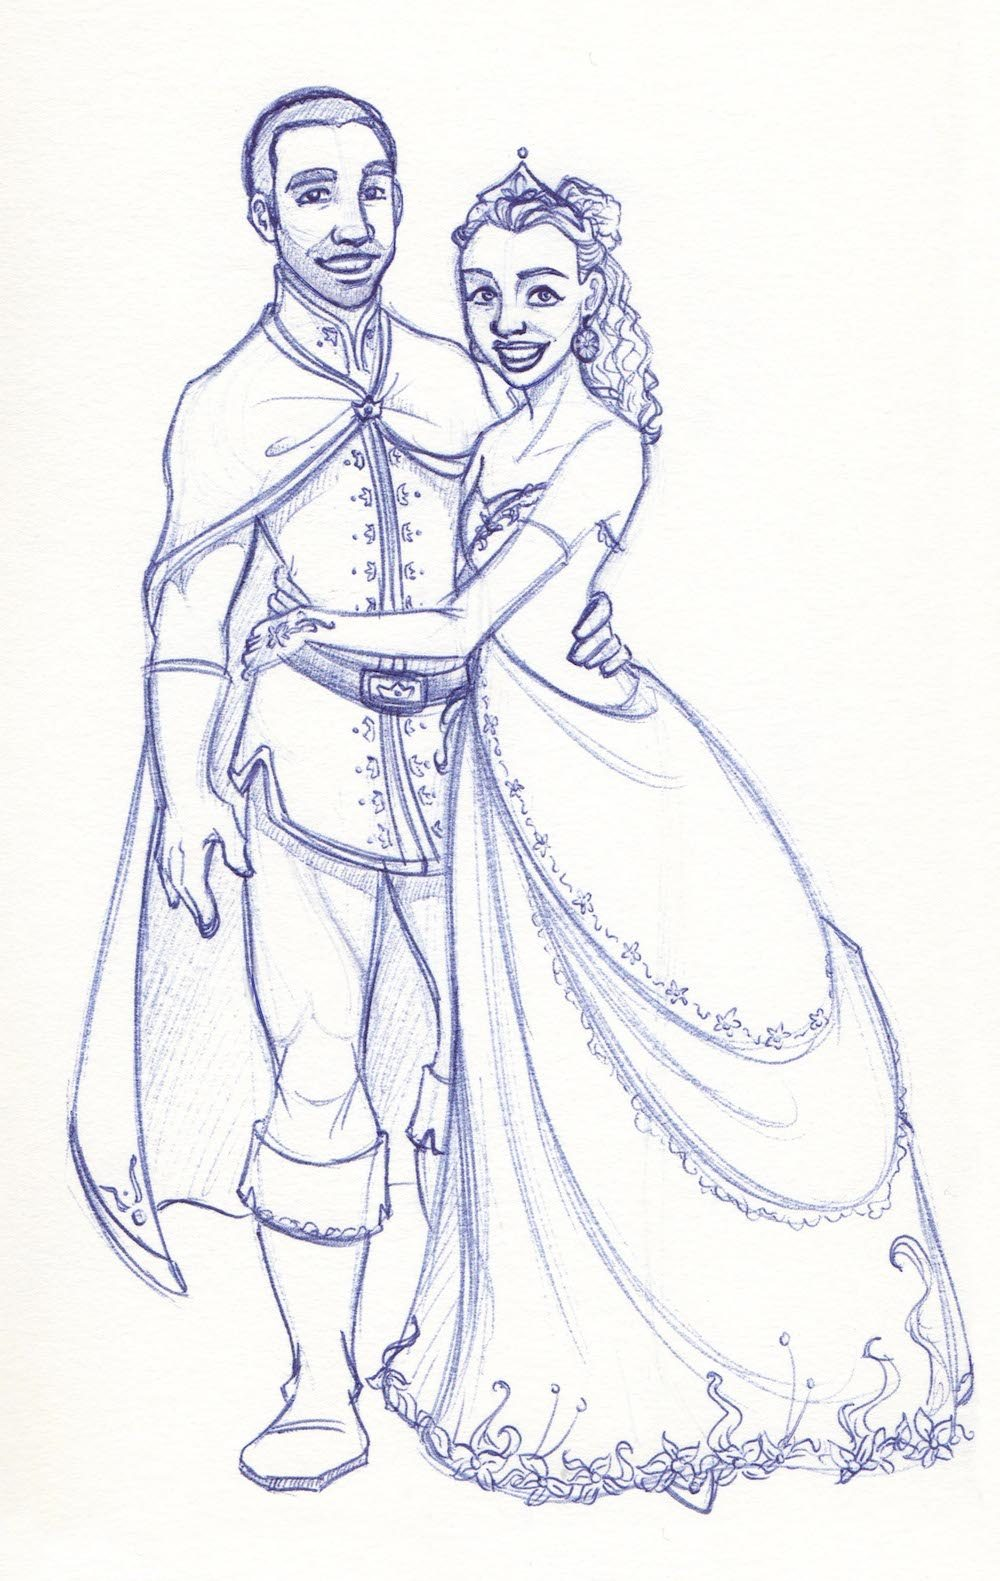 Draft Portrait of a Prince and Princess by Drew Graham